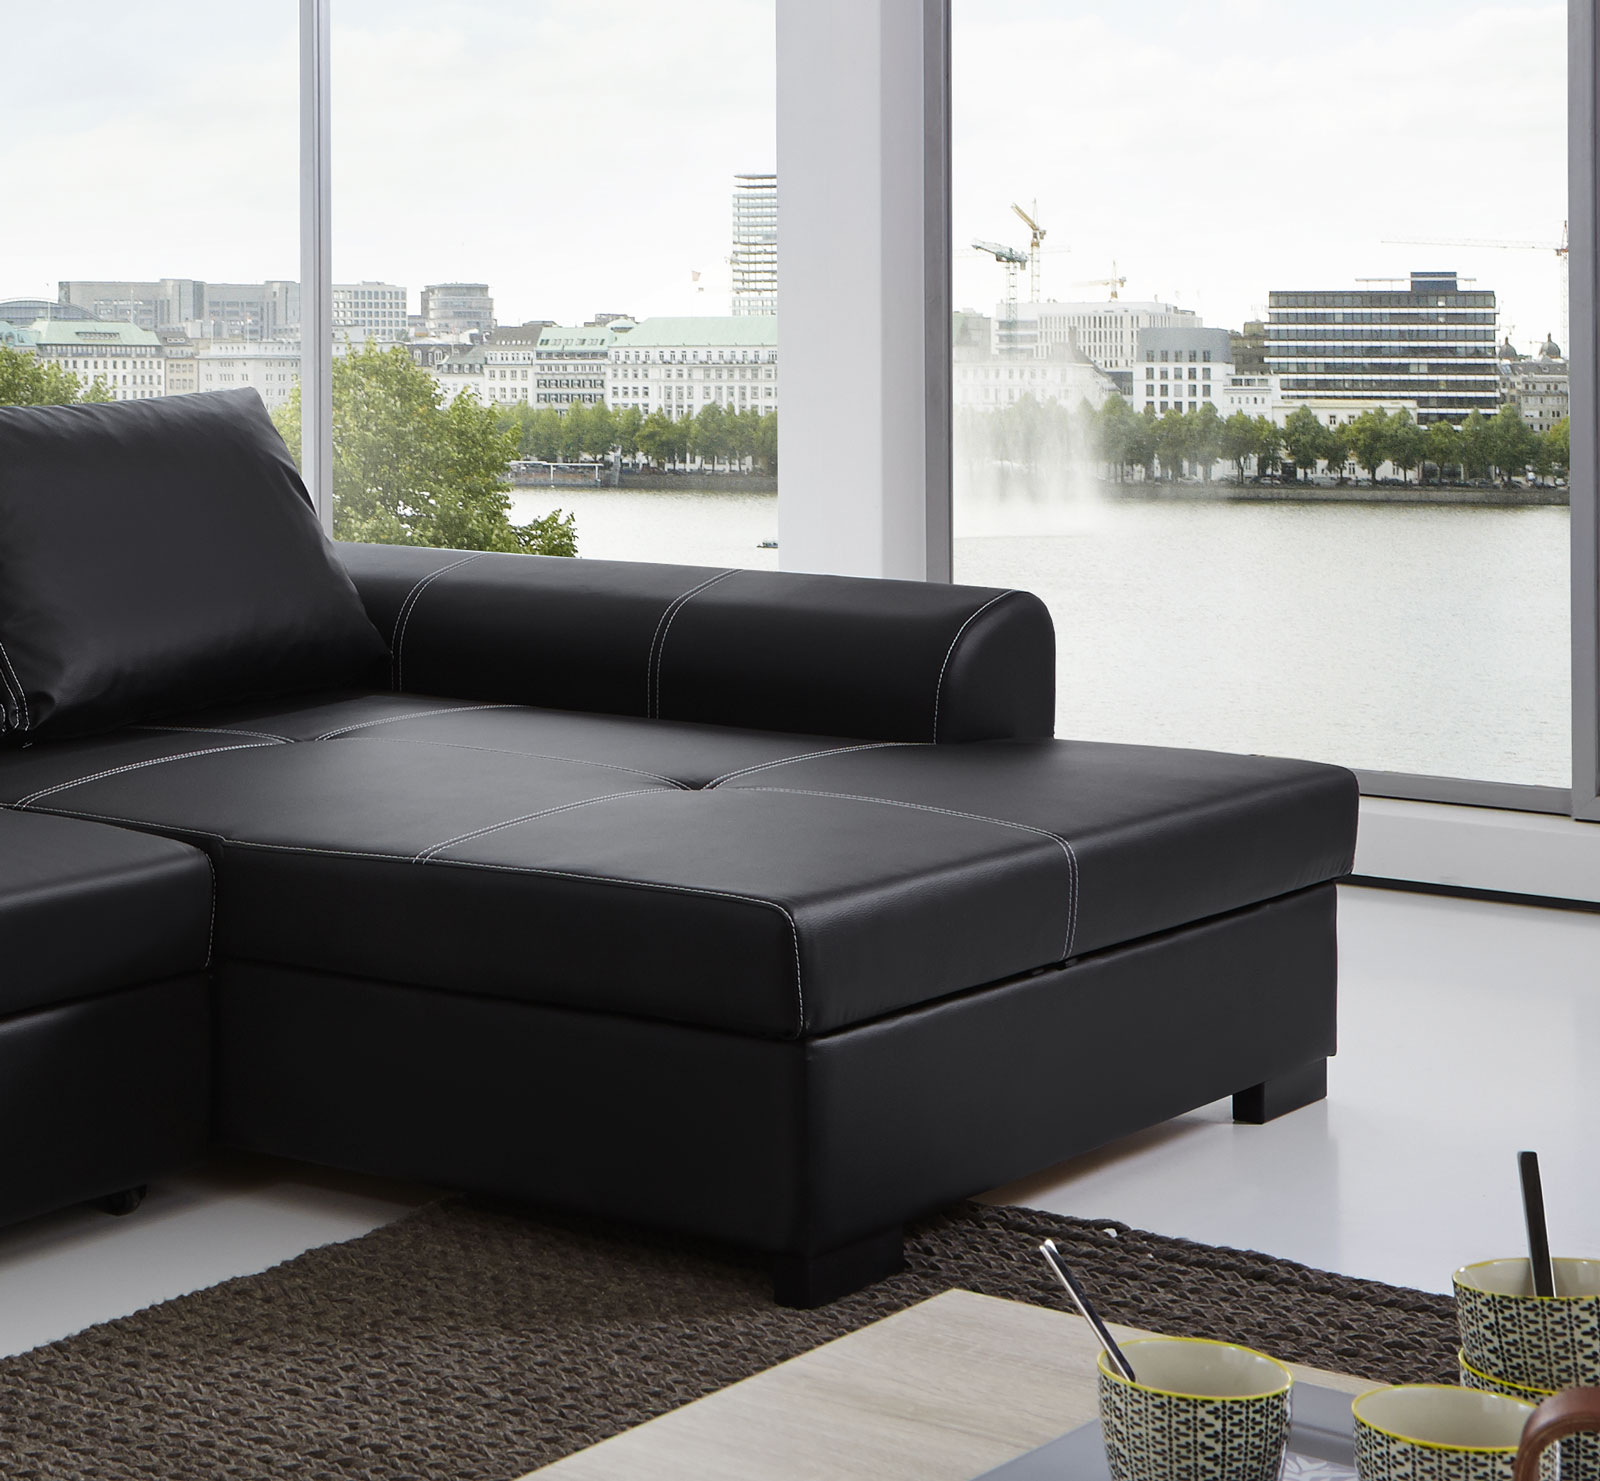 ecksofa schwarz perfect ecksofa husse sch n sofa f r home home sofahusse ecksofa schwarz with. Black Bedroom Furniture Sets. Home Design Ideas